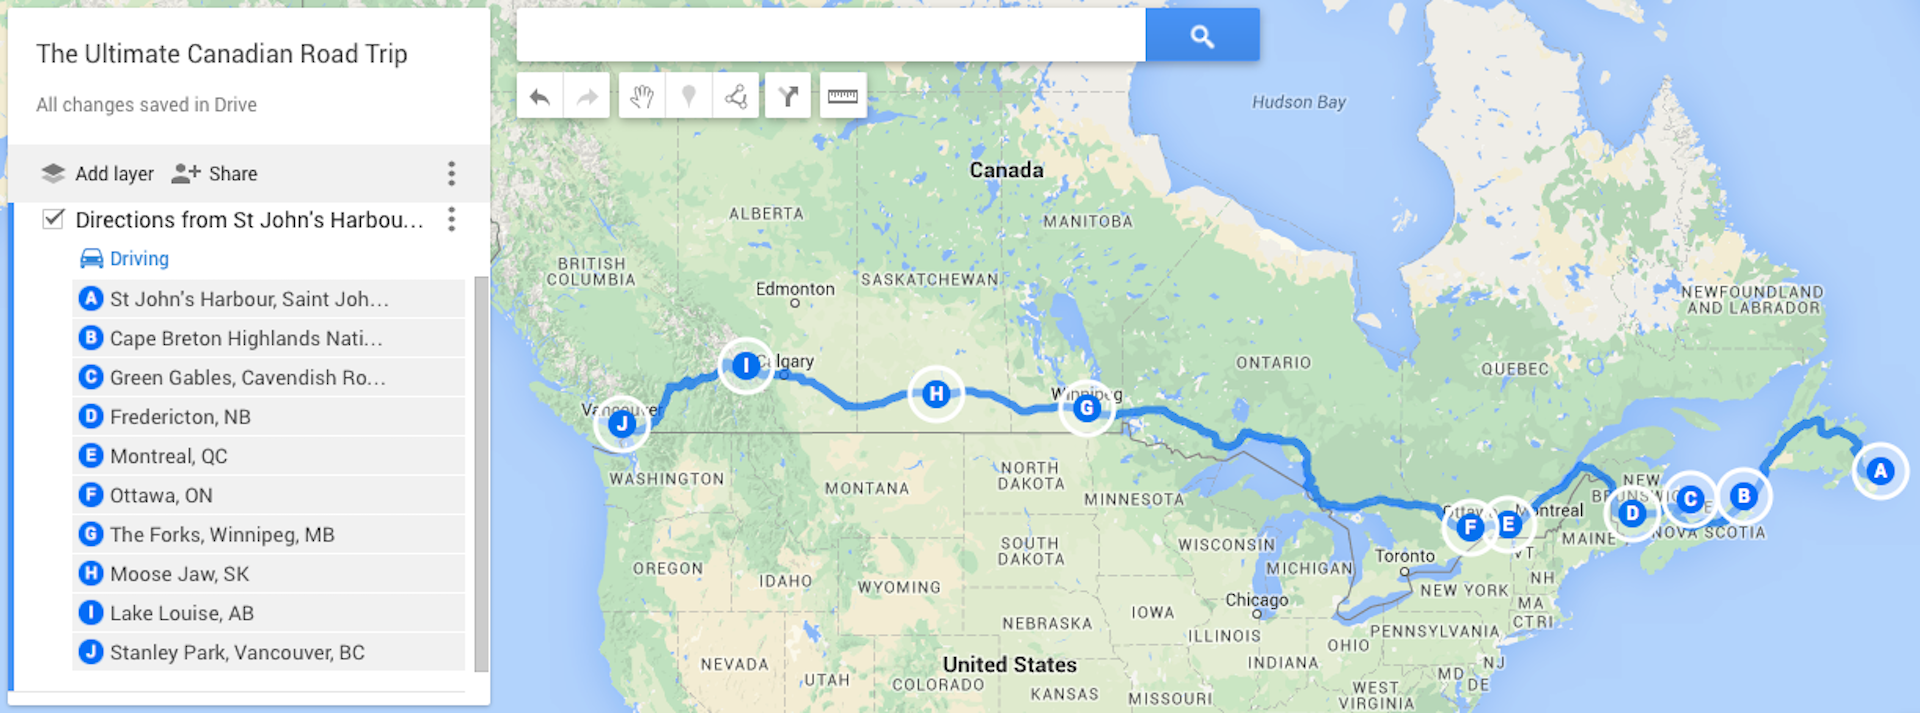 Map Of Canada Driving.A Map Of Canada That Highlights The Driving Route For The 10